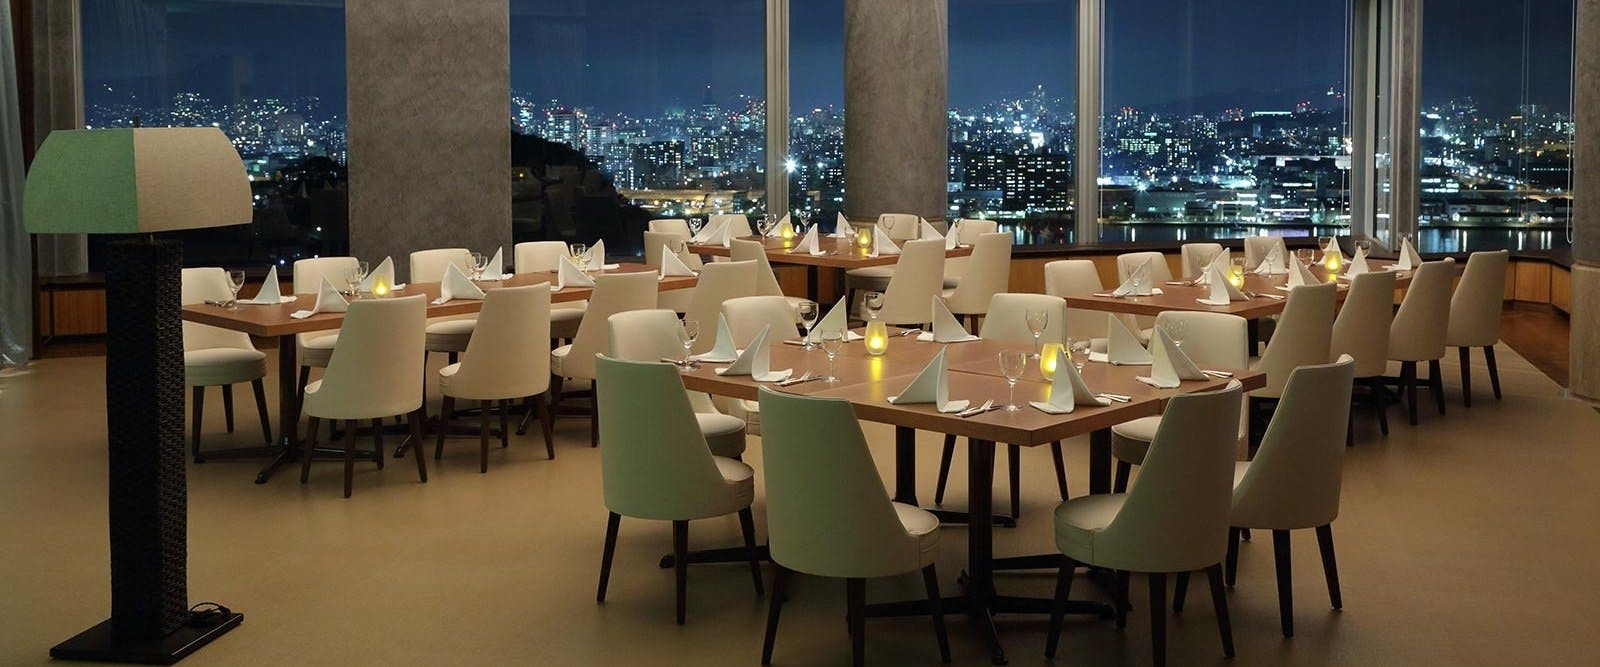 Sky Lounge Restaurant at Grand Prince Hotel Hiroshima, Japan